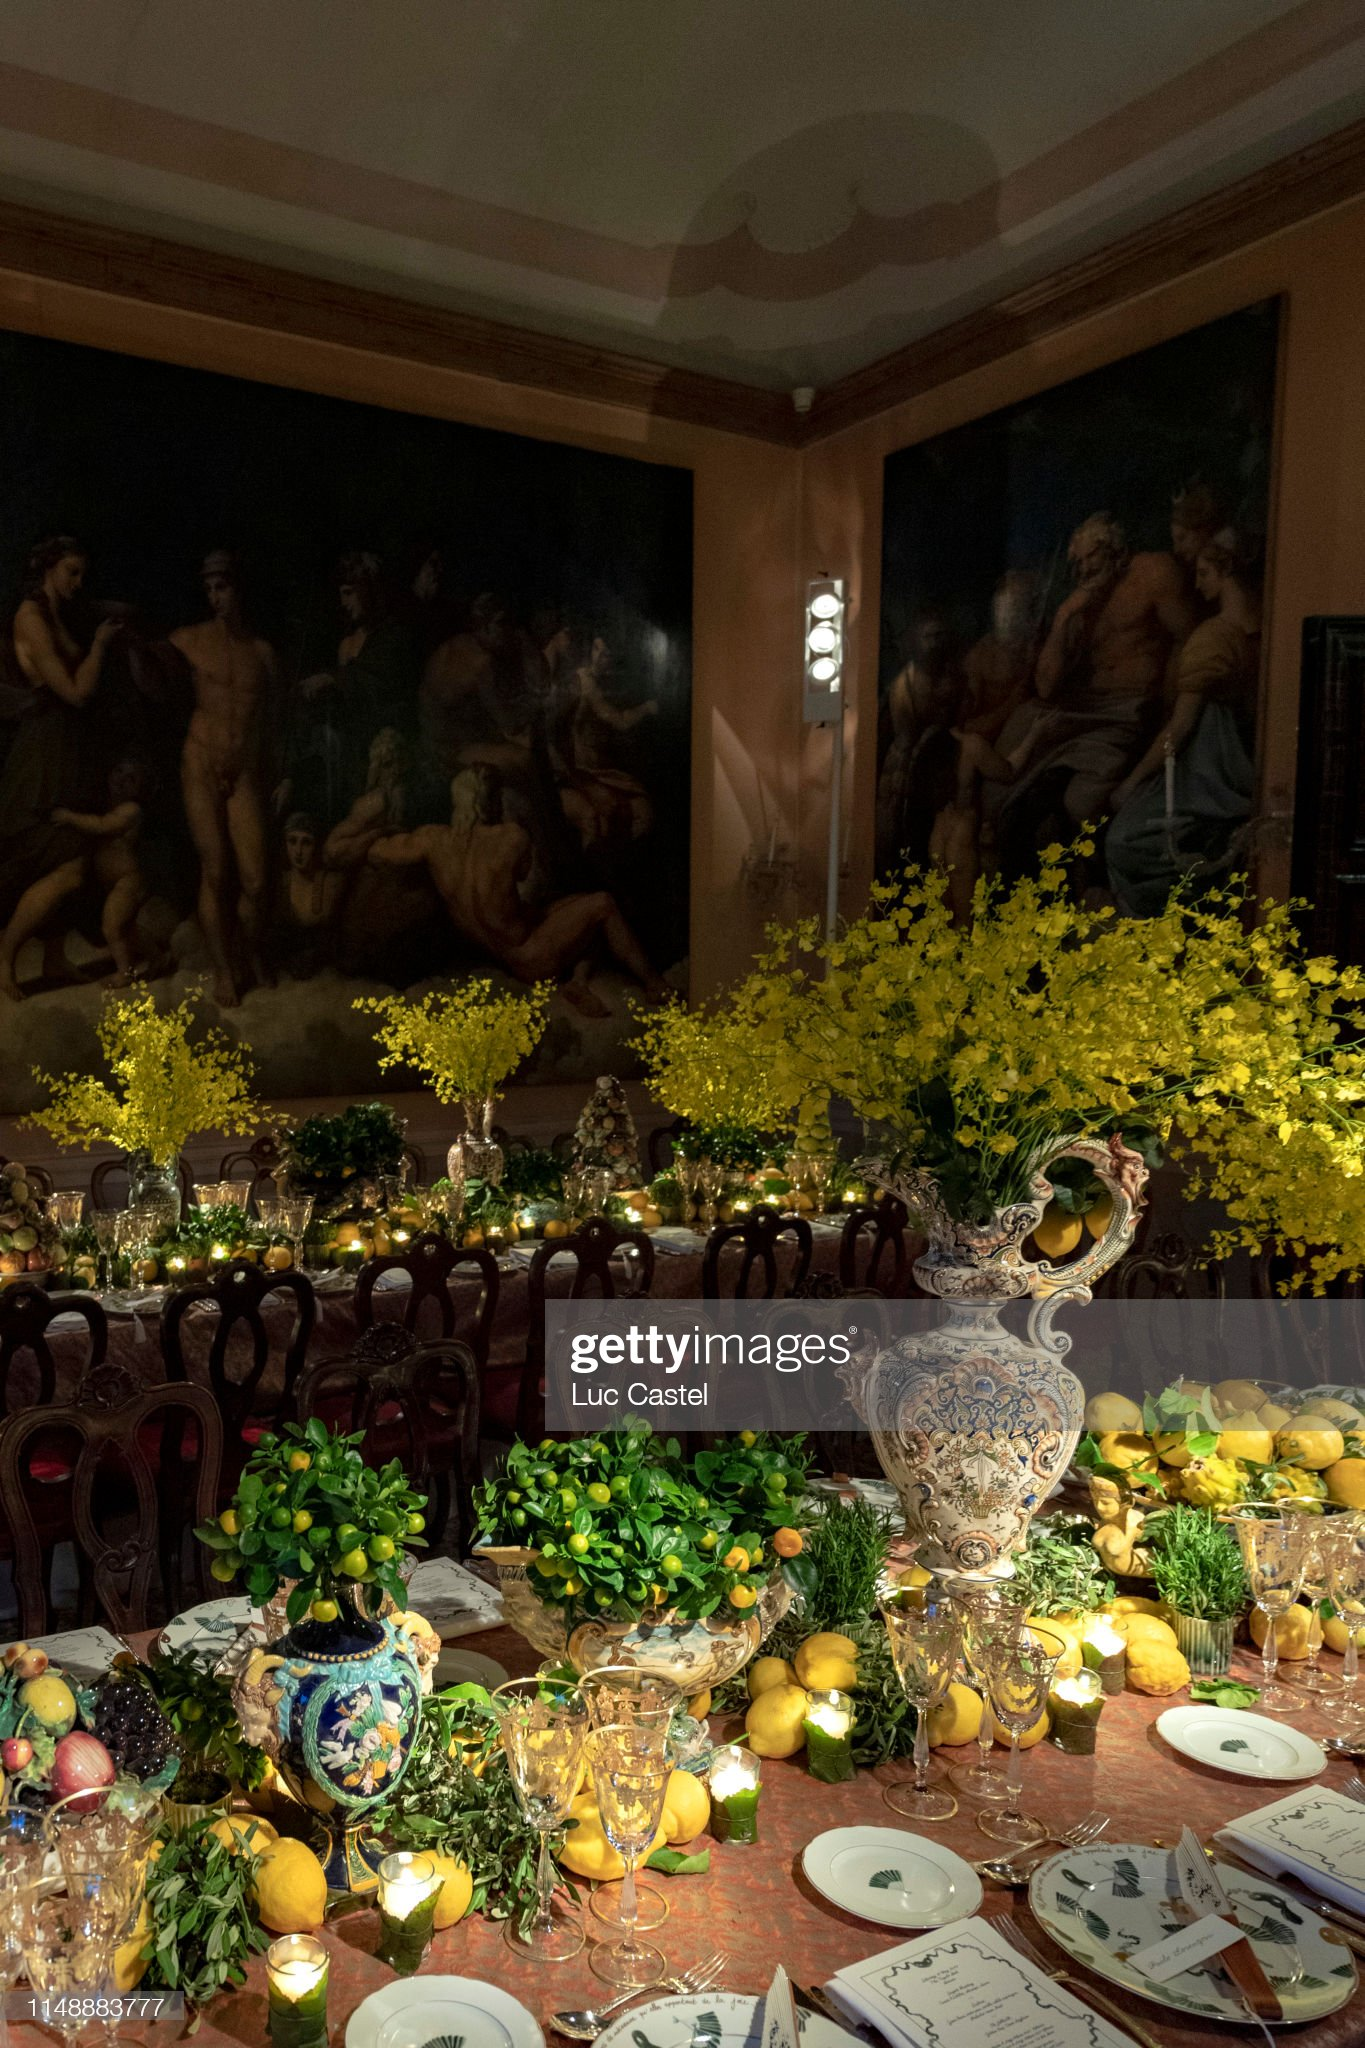 https://media.gettyimages.com/photos/illustration-view-of-the-tiepolo-ball-dior-in-venice-dinner-gala-at-picture-id1148883777?s=2048x2048